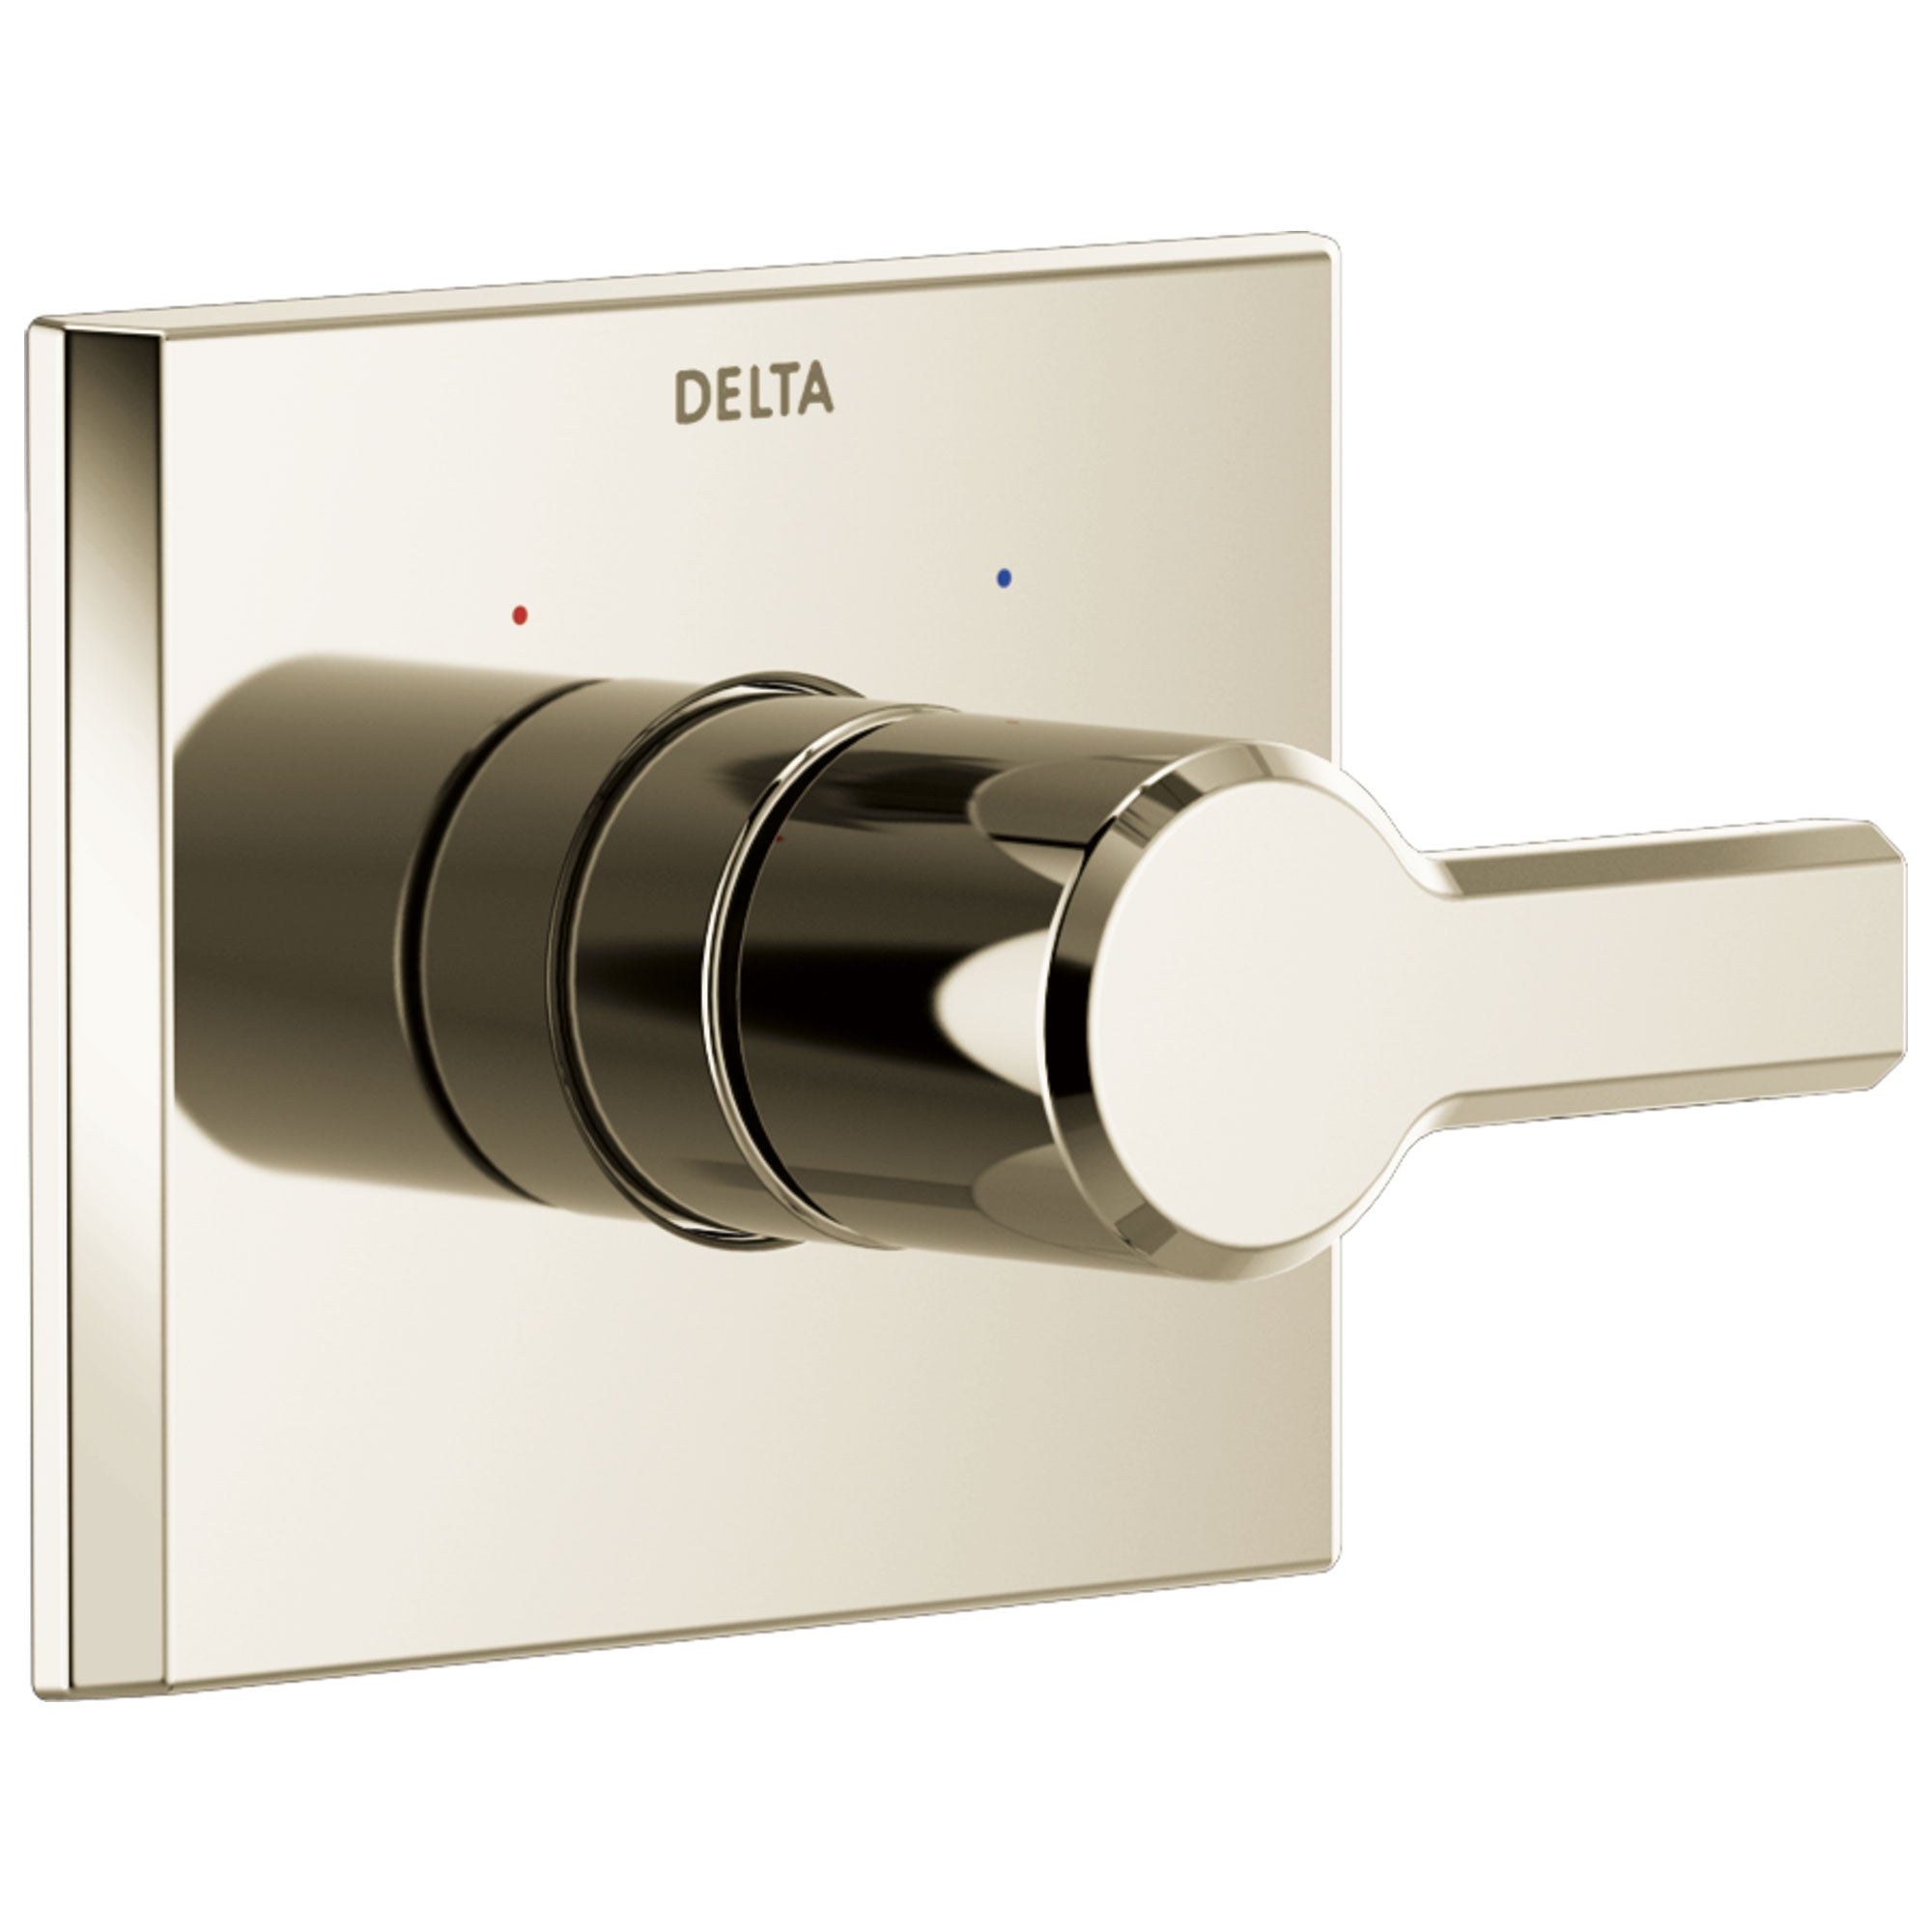 Delta Pivotal Polished Nickel Finish Monitor 14 Series Single Handle Shower Faucet Control Only Includes Cartridge and Valve without Stops D3527V